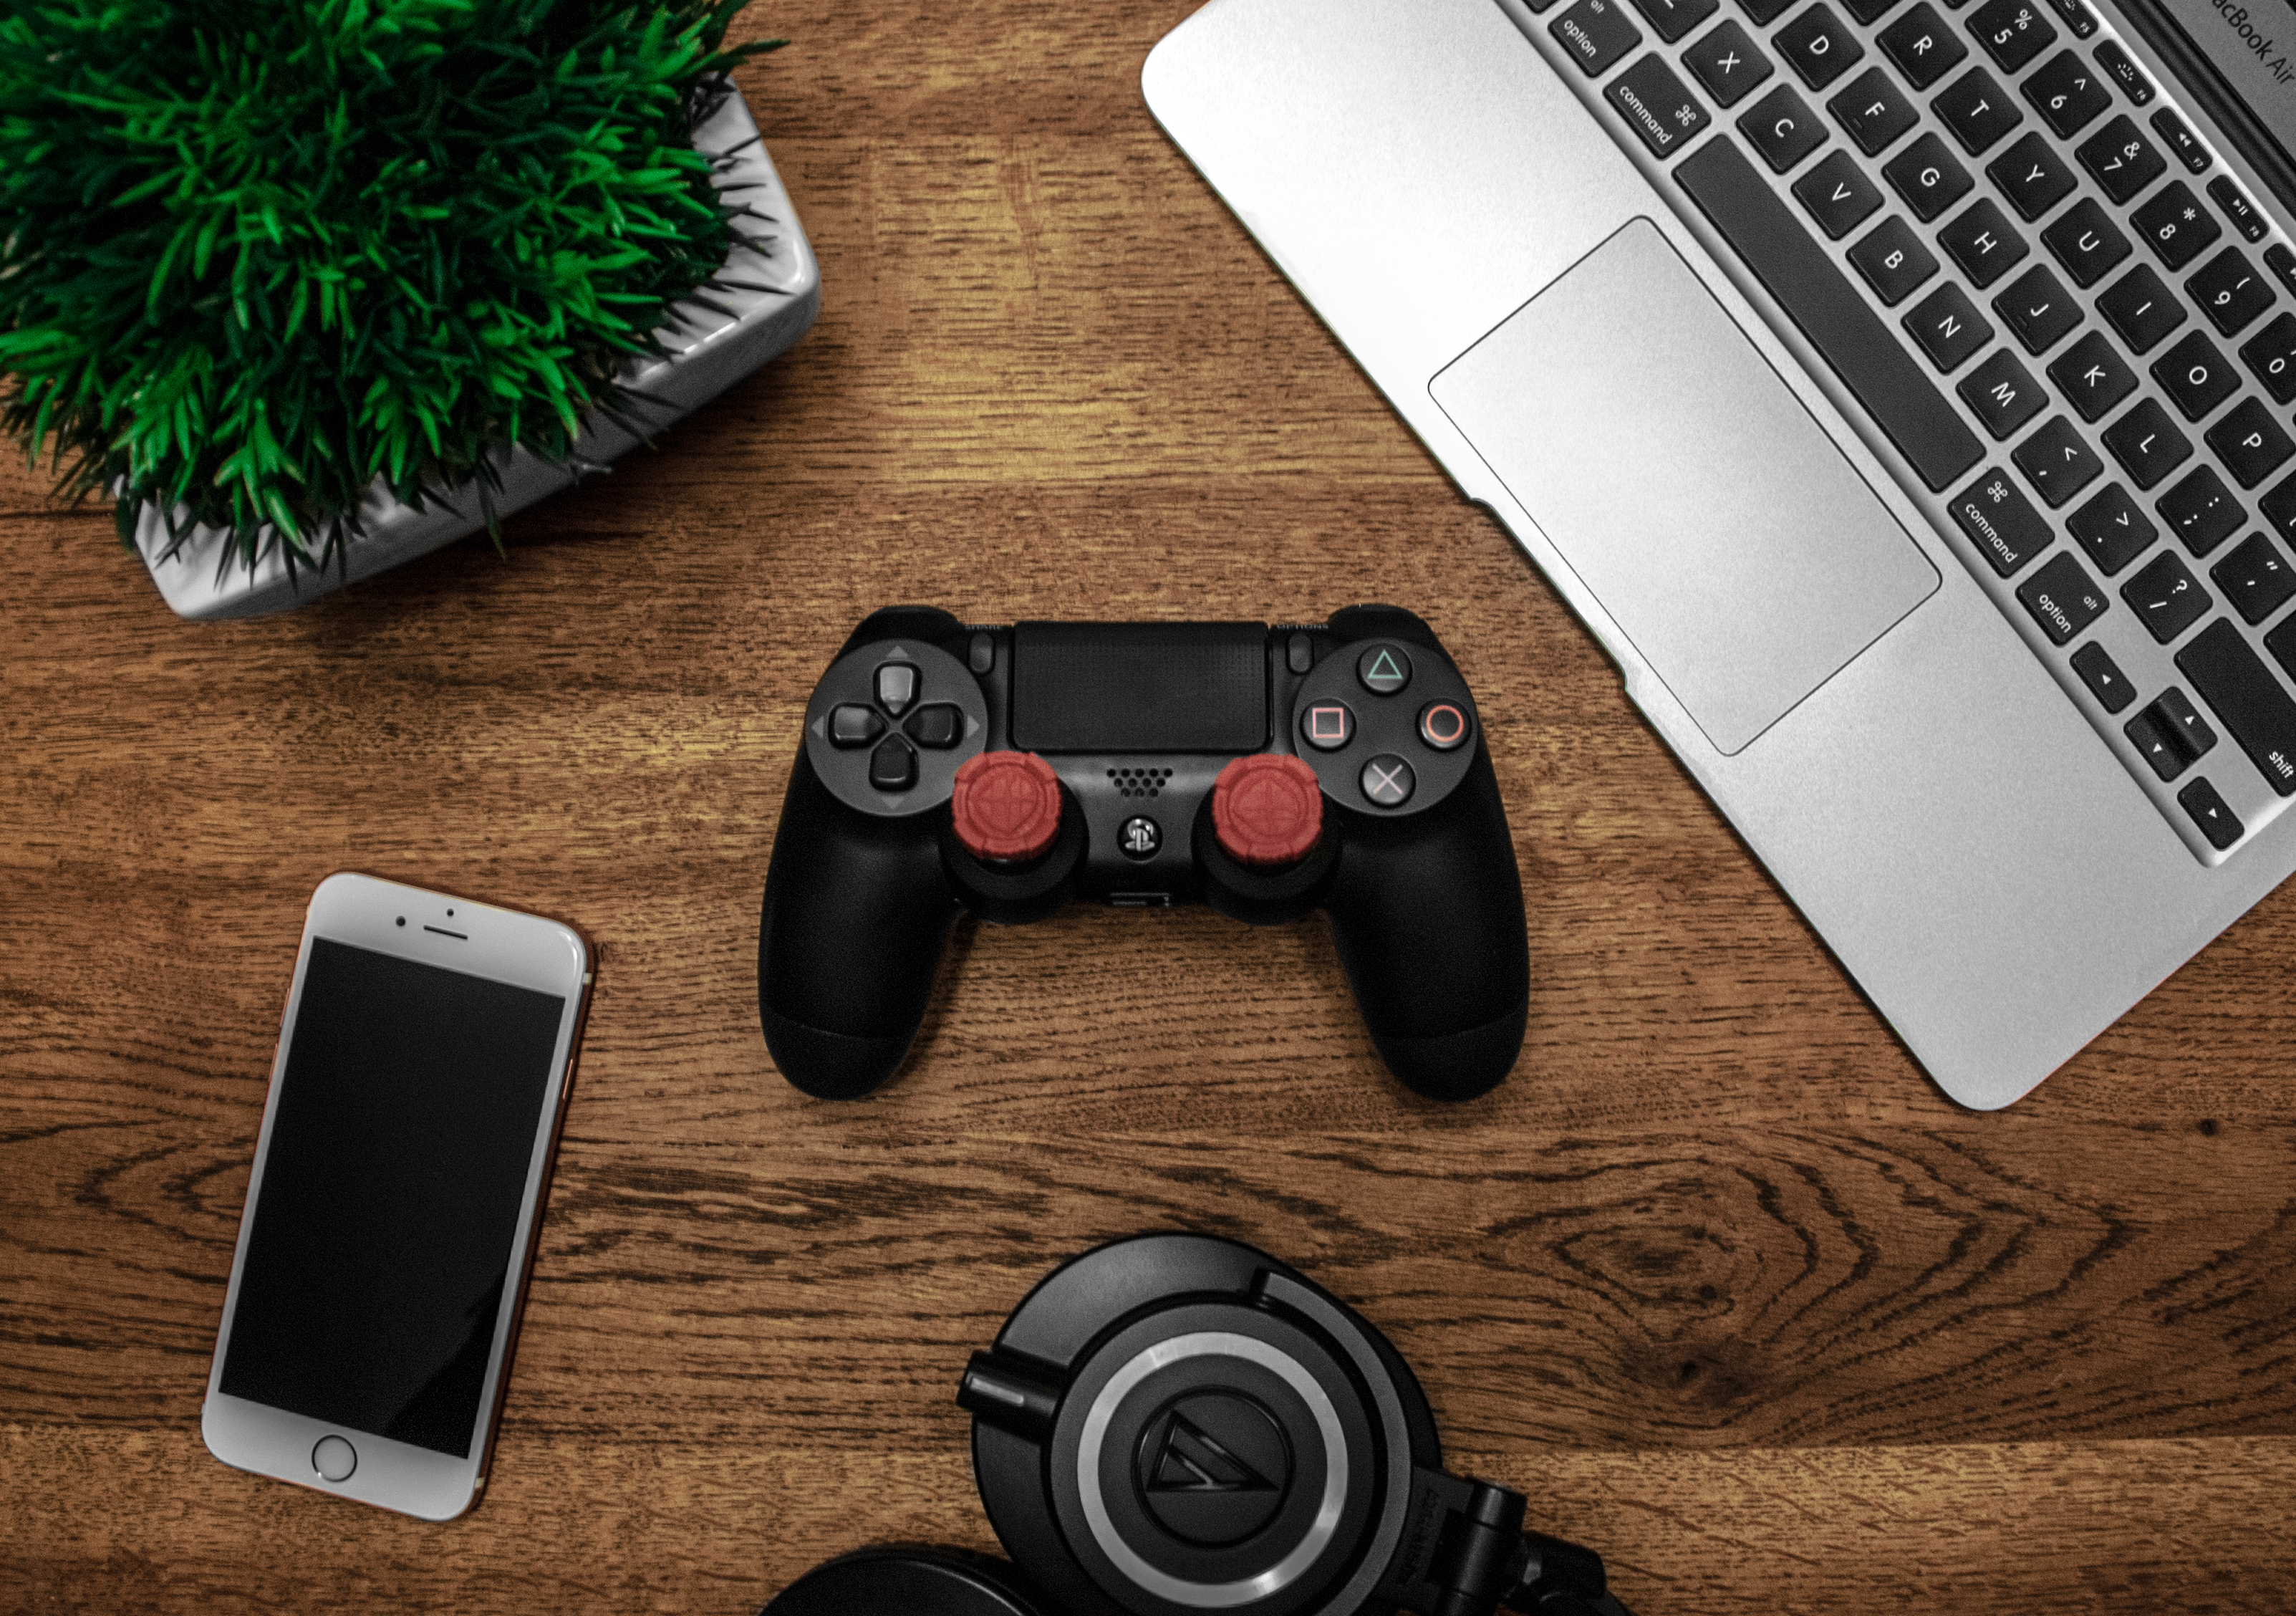 Silver Macbook Beside Black Sony Ps4 Dualshock 4 Silver